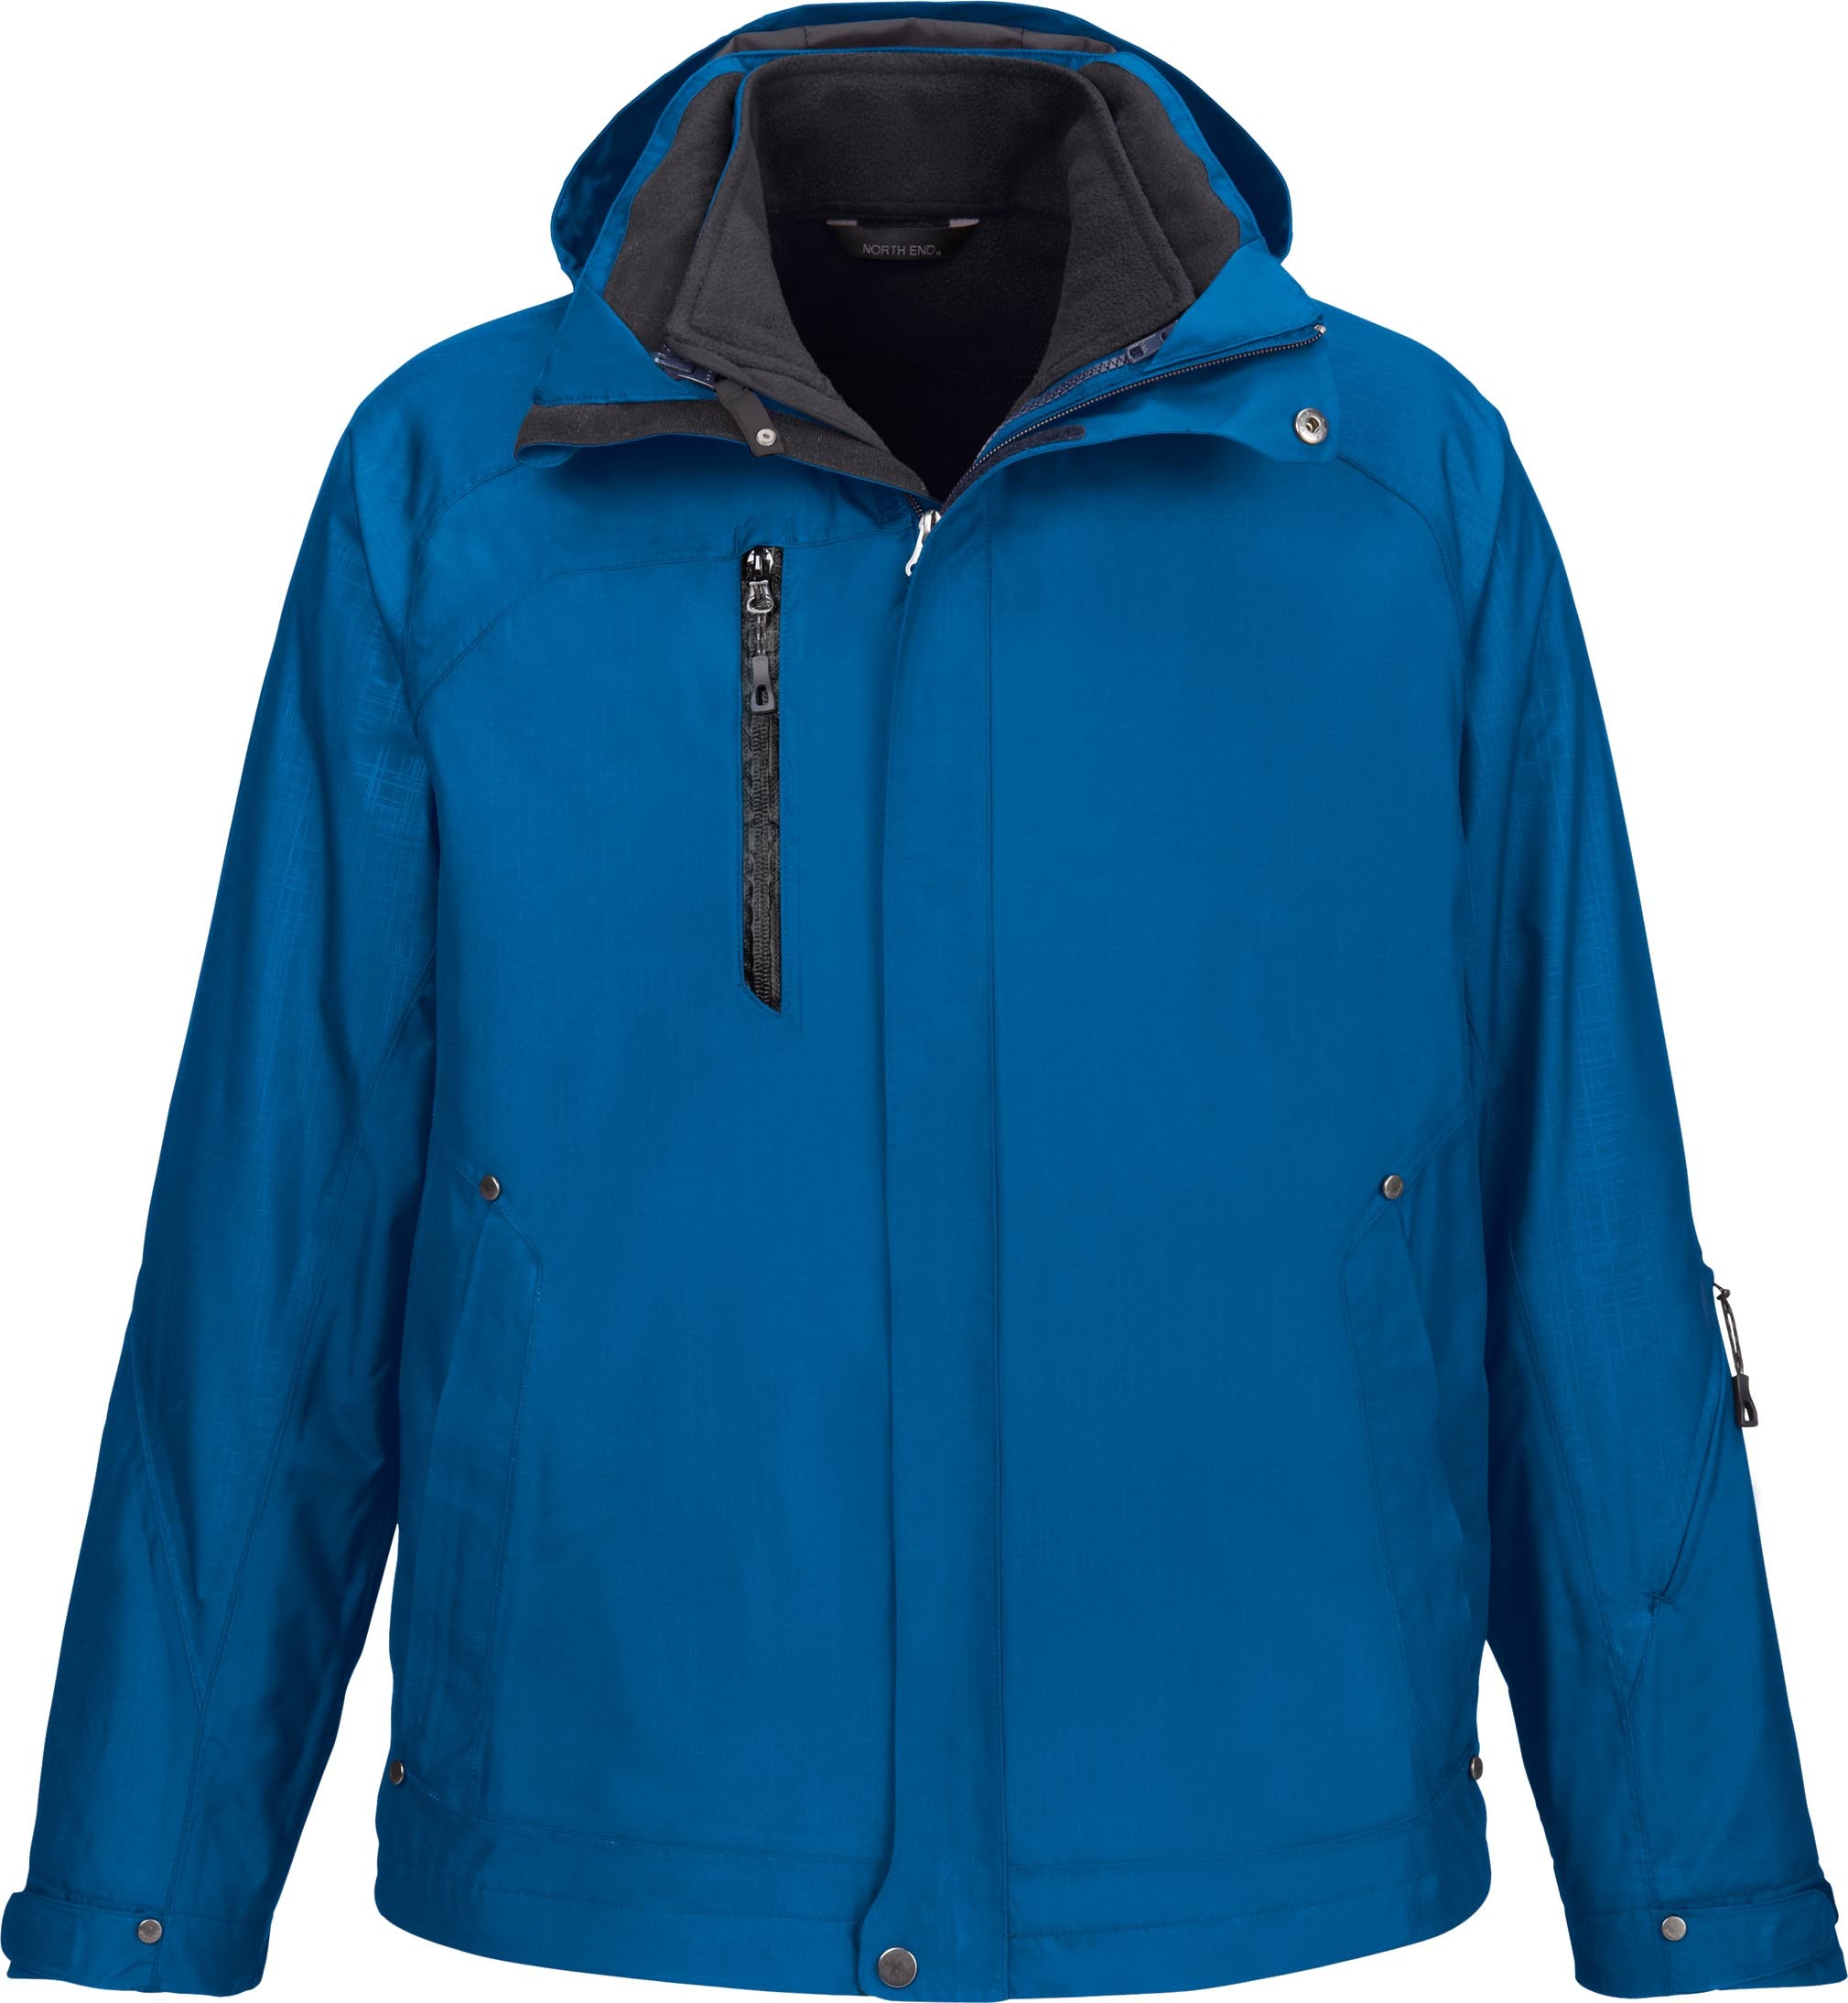 Ash City System Jackets 88178 - Caprice Men's 3-In-1 Jacket With Soft Shell Liner